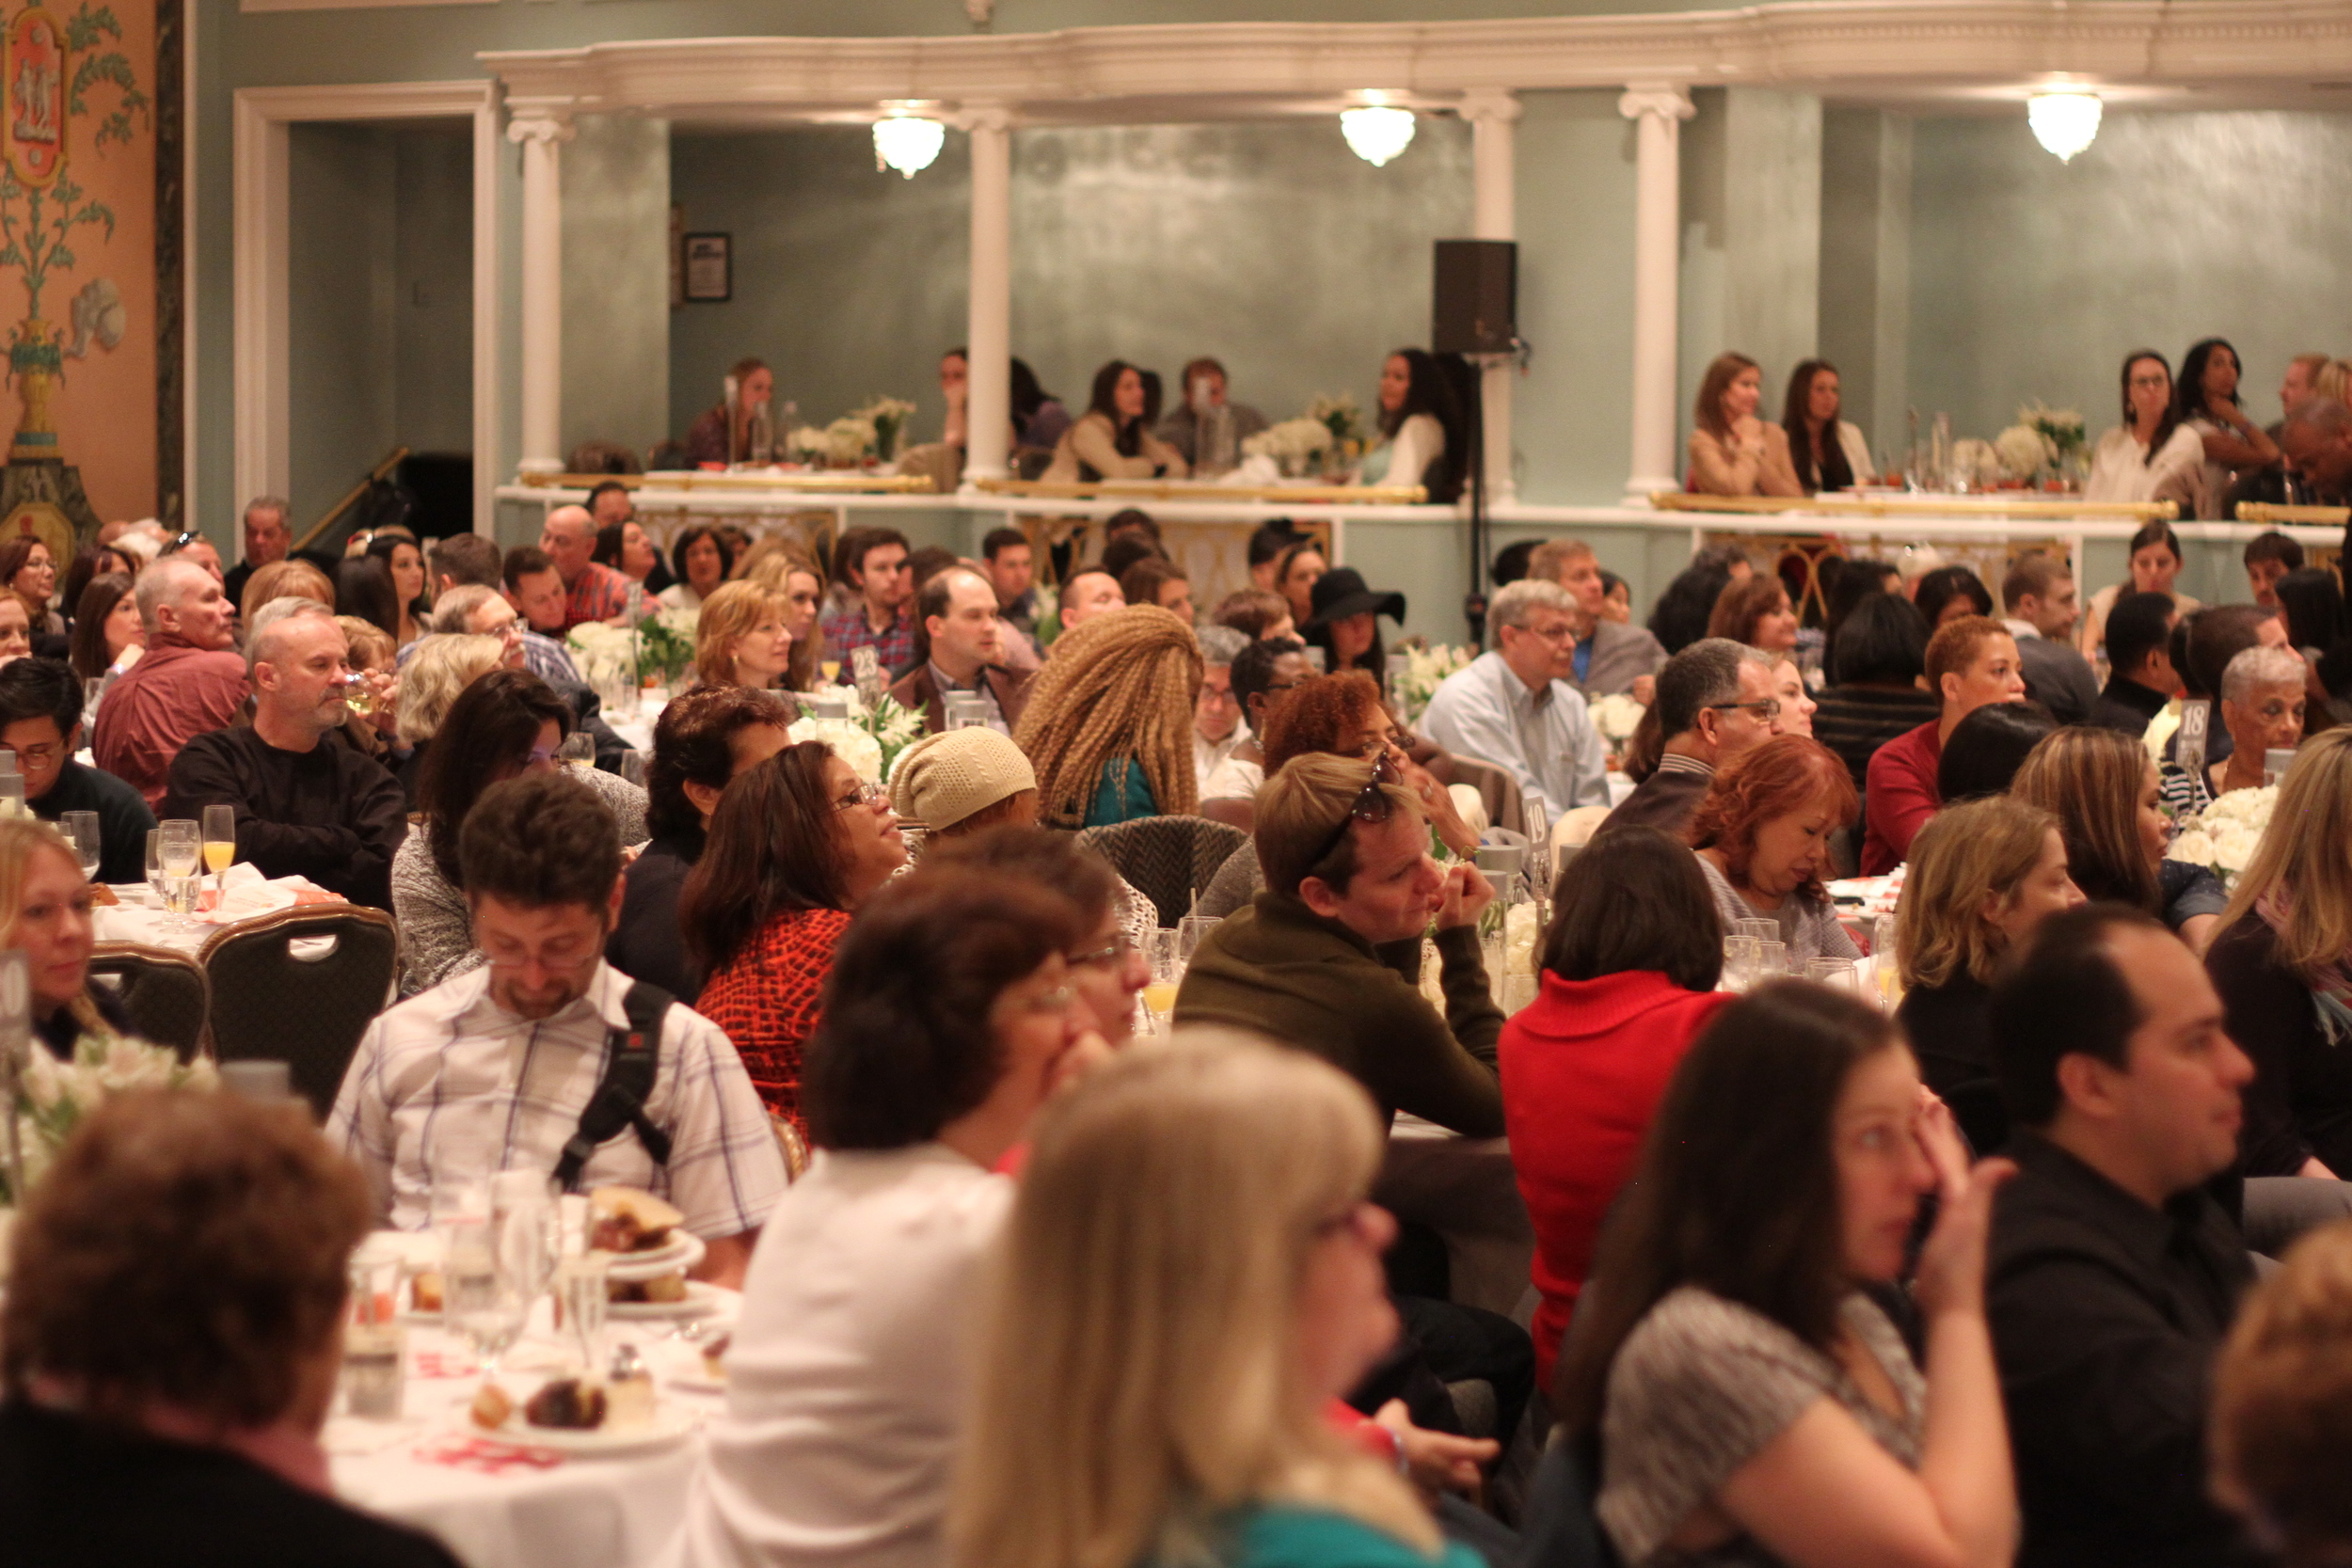 An intimate crowd for the Trisha Yearwood performance at the #NYCWFF Down Home Country Brunch.